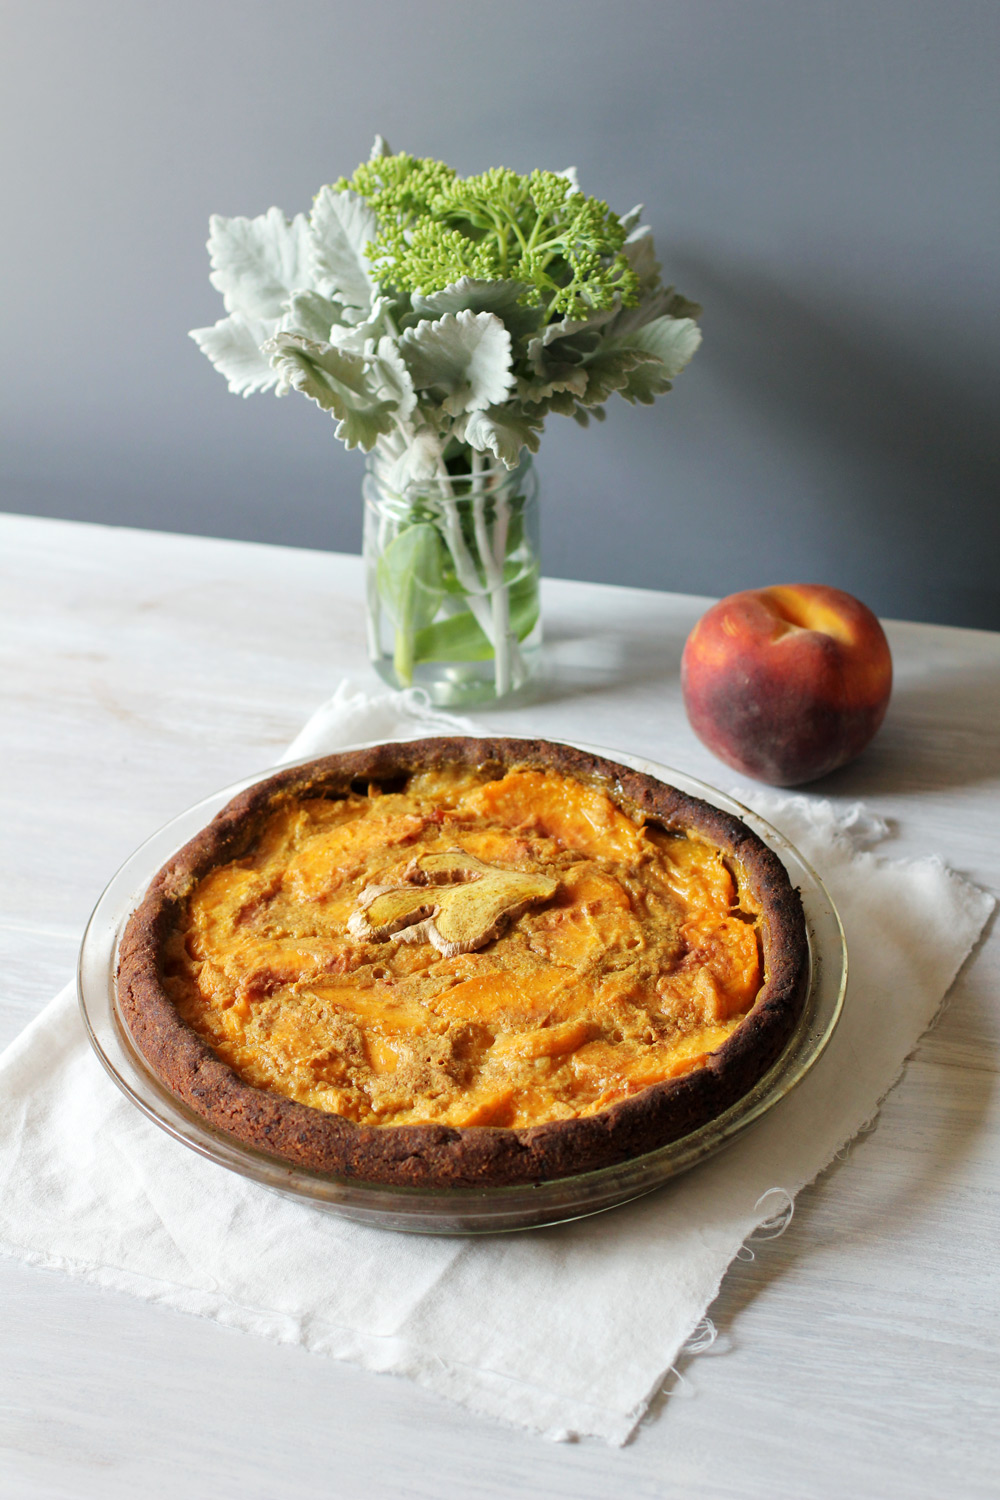 Ginger and Turmeric Peach Pie